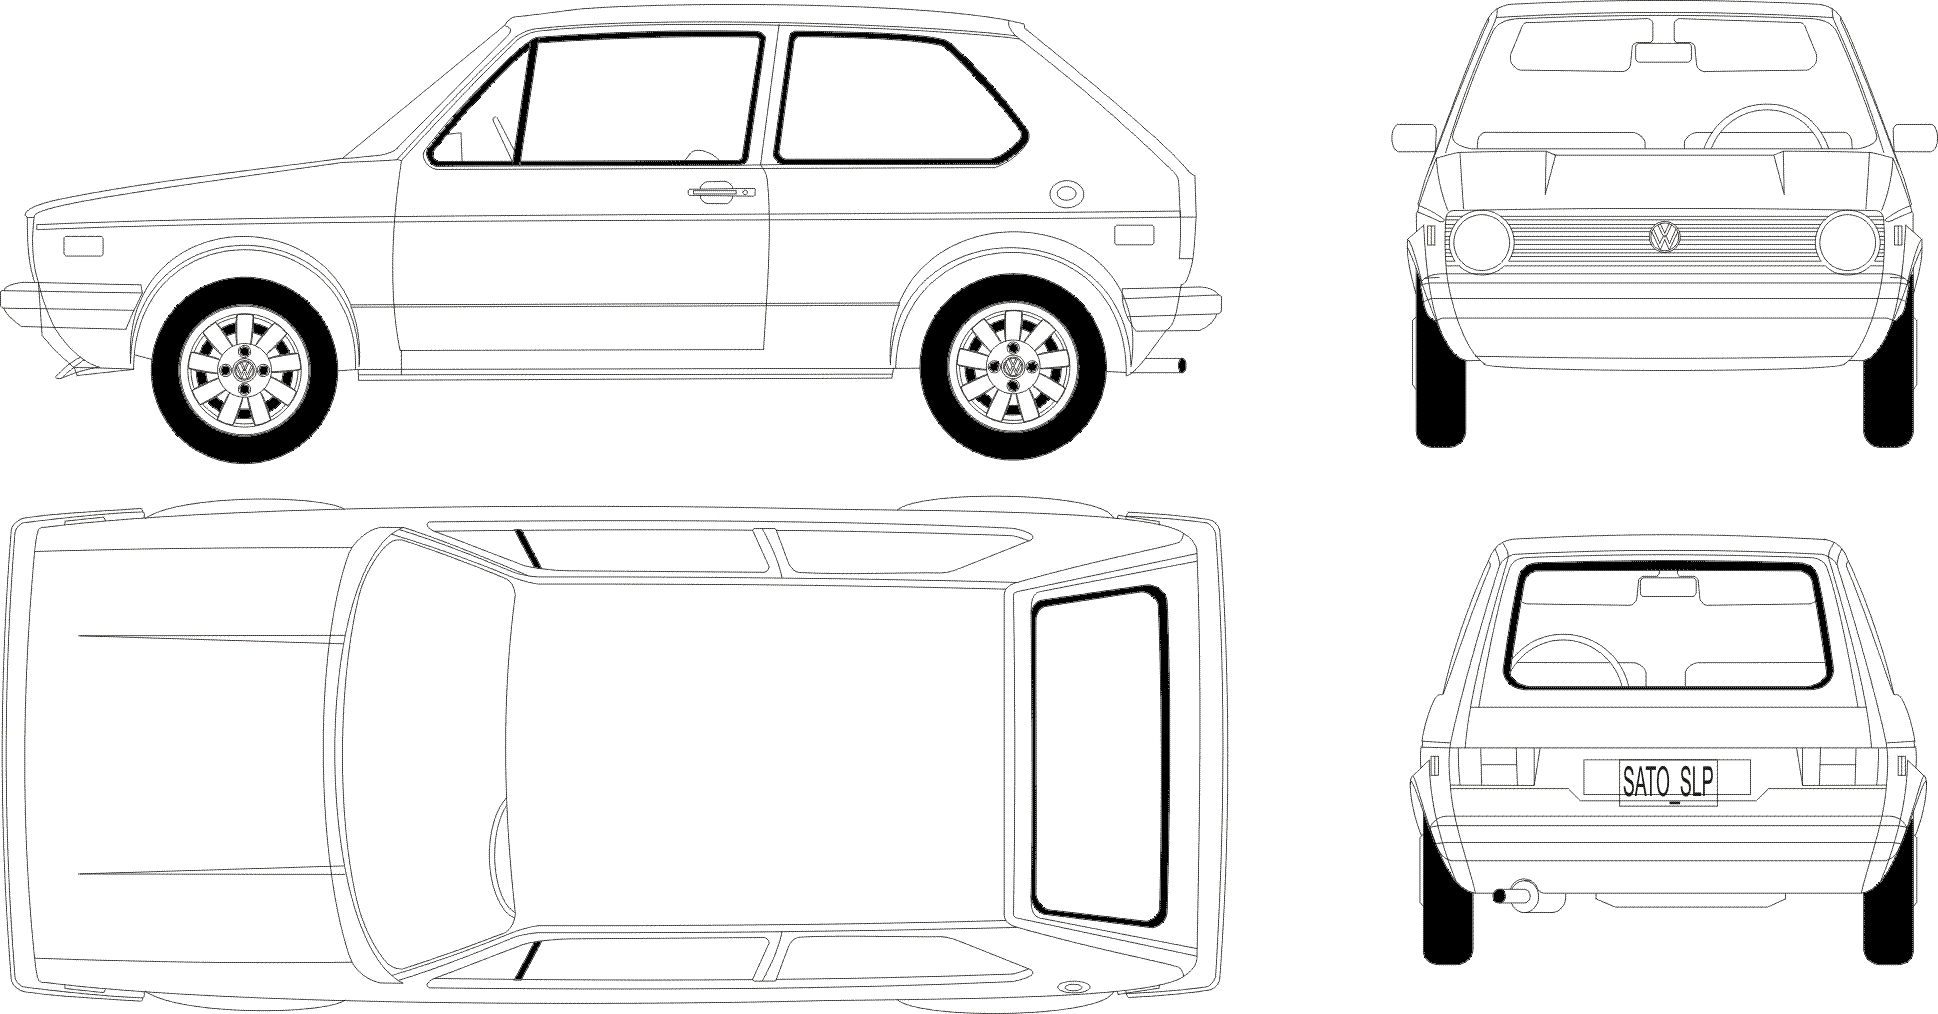 Volkswagen golf 2006 blueprints pinterest volkswagen golf volkswagen golf 2006 blueprints pinterest volkswagen golf and template malvernweather